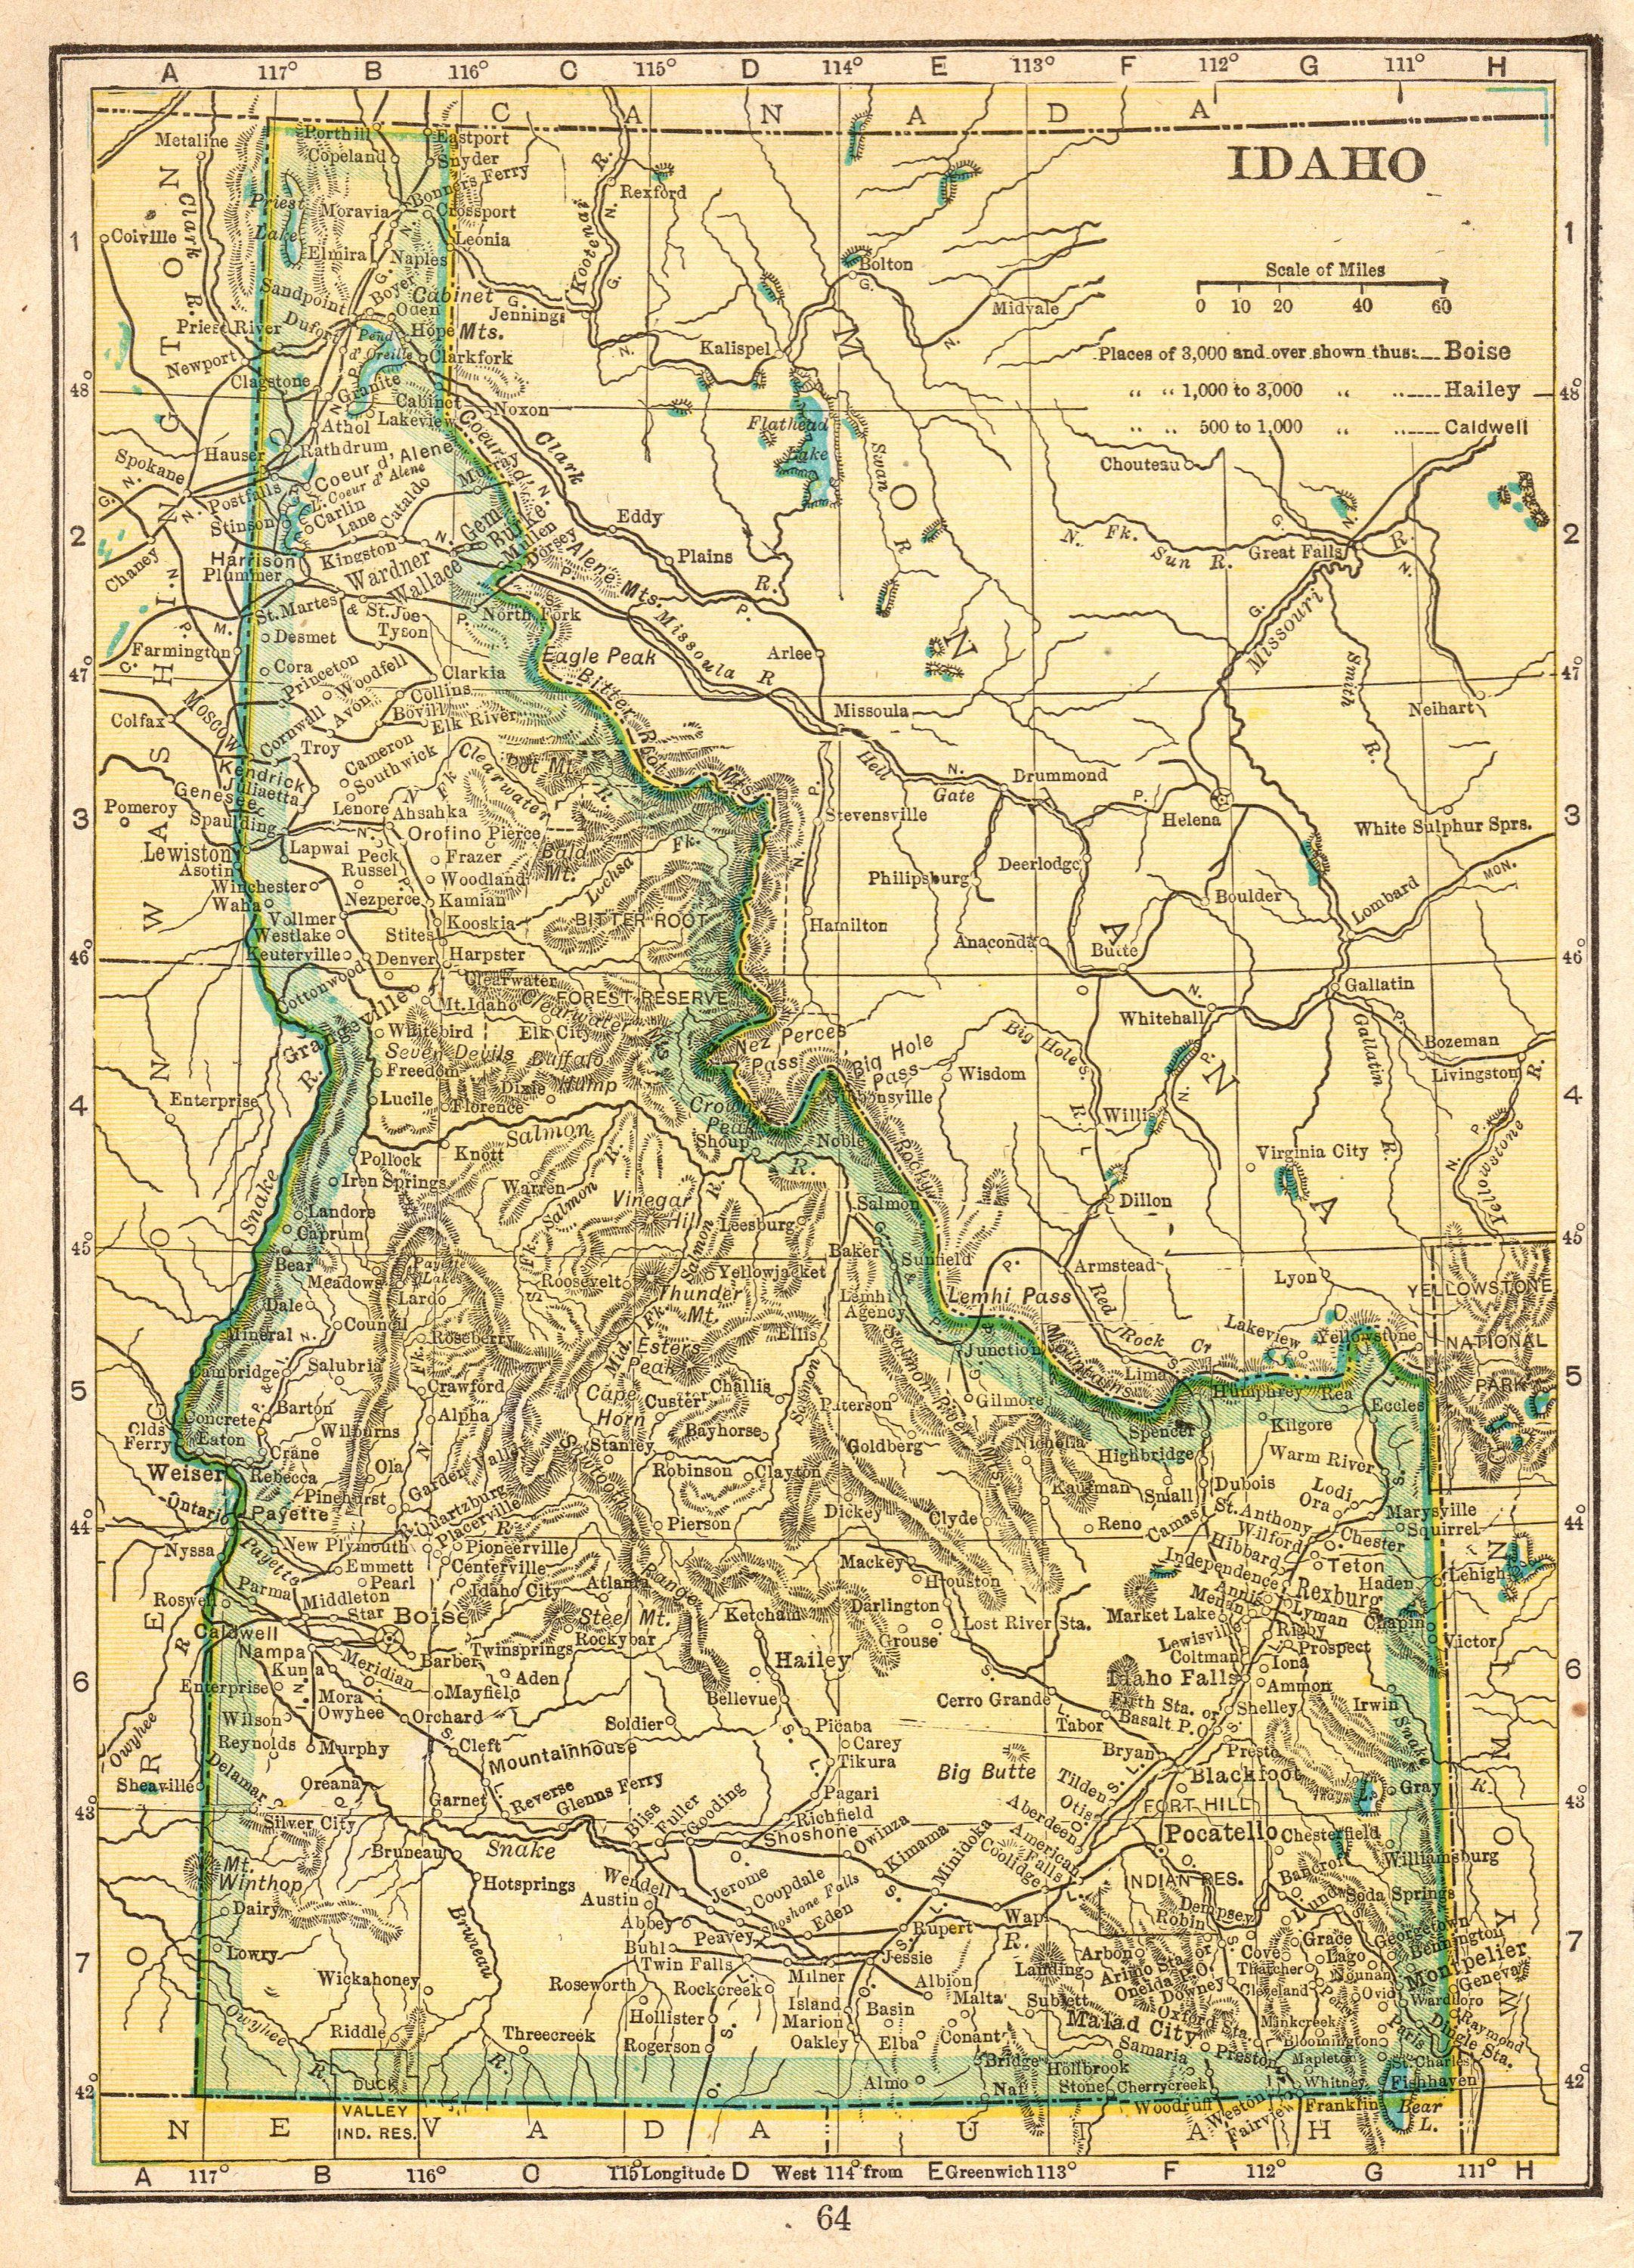 1912 Antique IDAHO Map of Idaho State Map Print Vintage Small Map ...